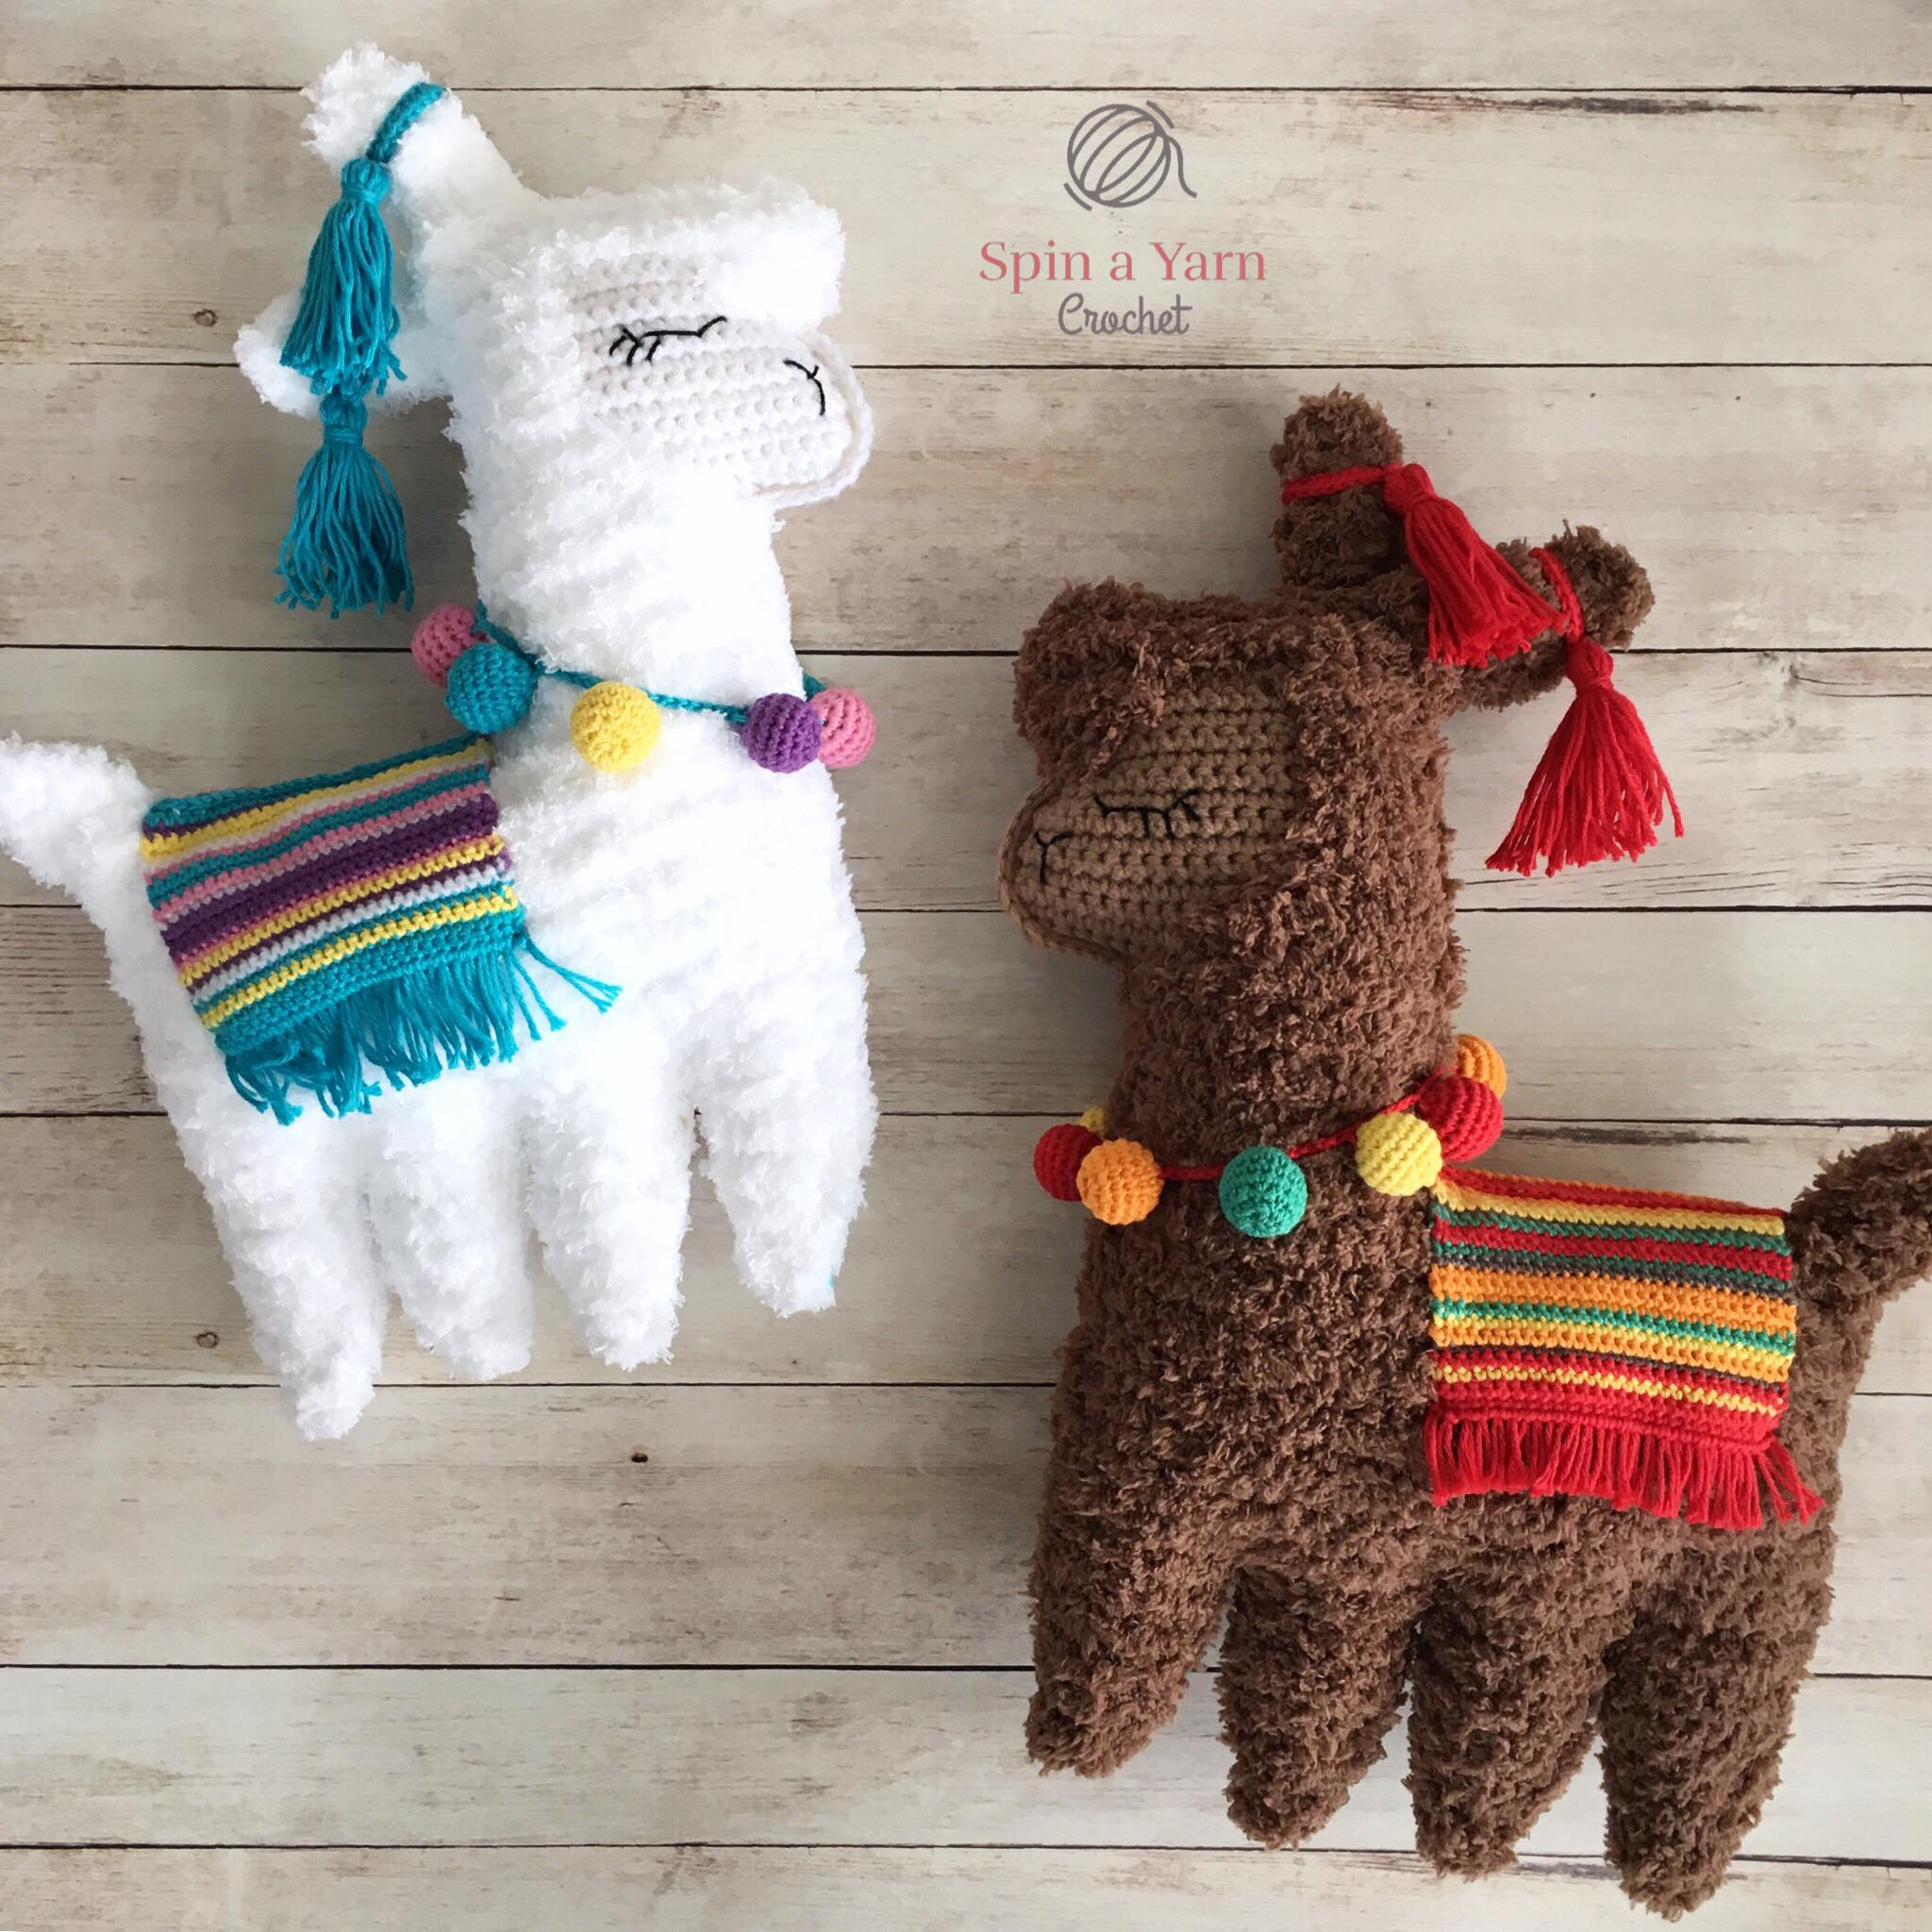 More Llama and Alpaca Crochet Patterns | Crochet patterns, Crochet ... | 2048x2048